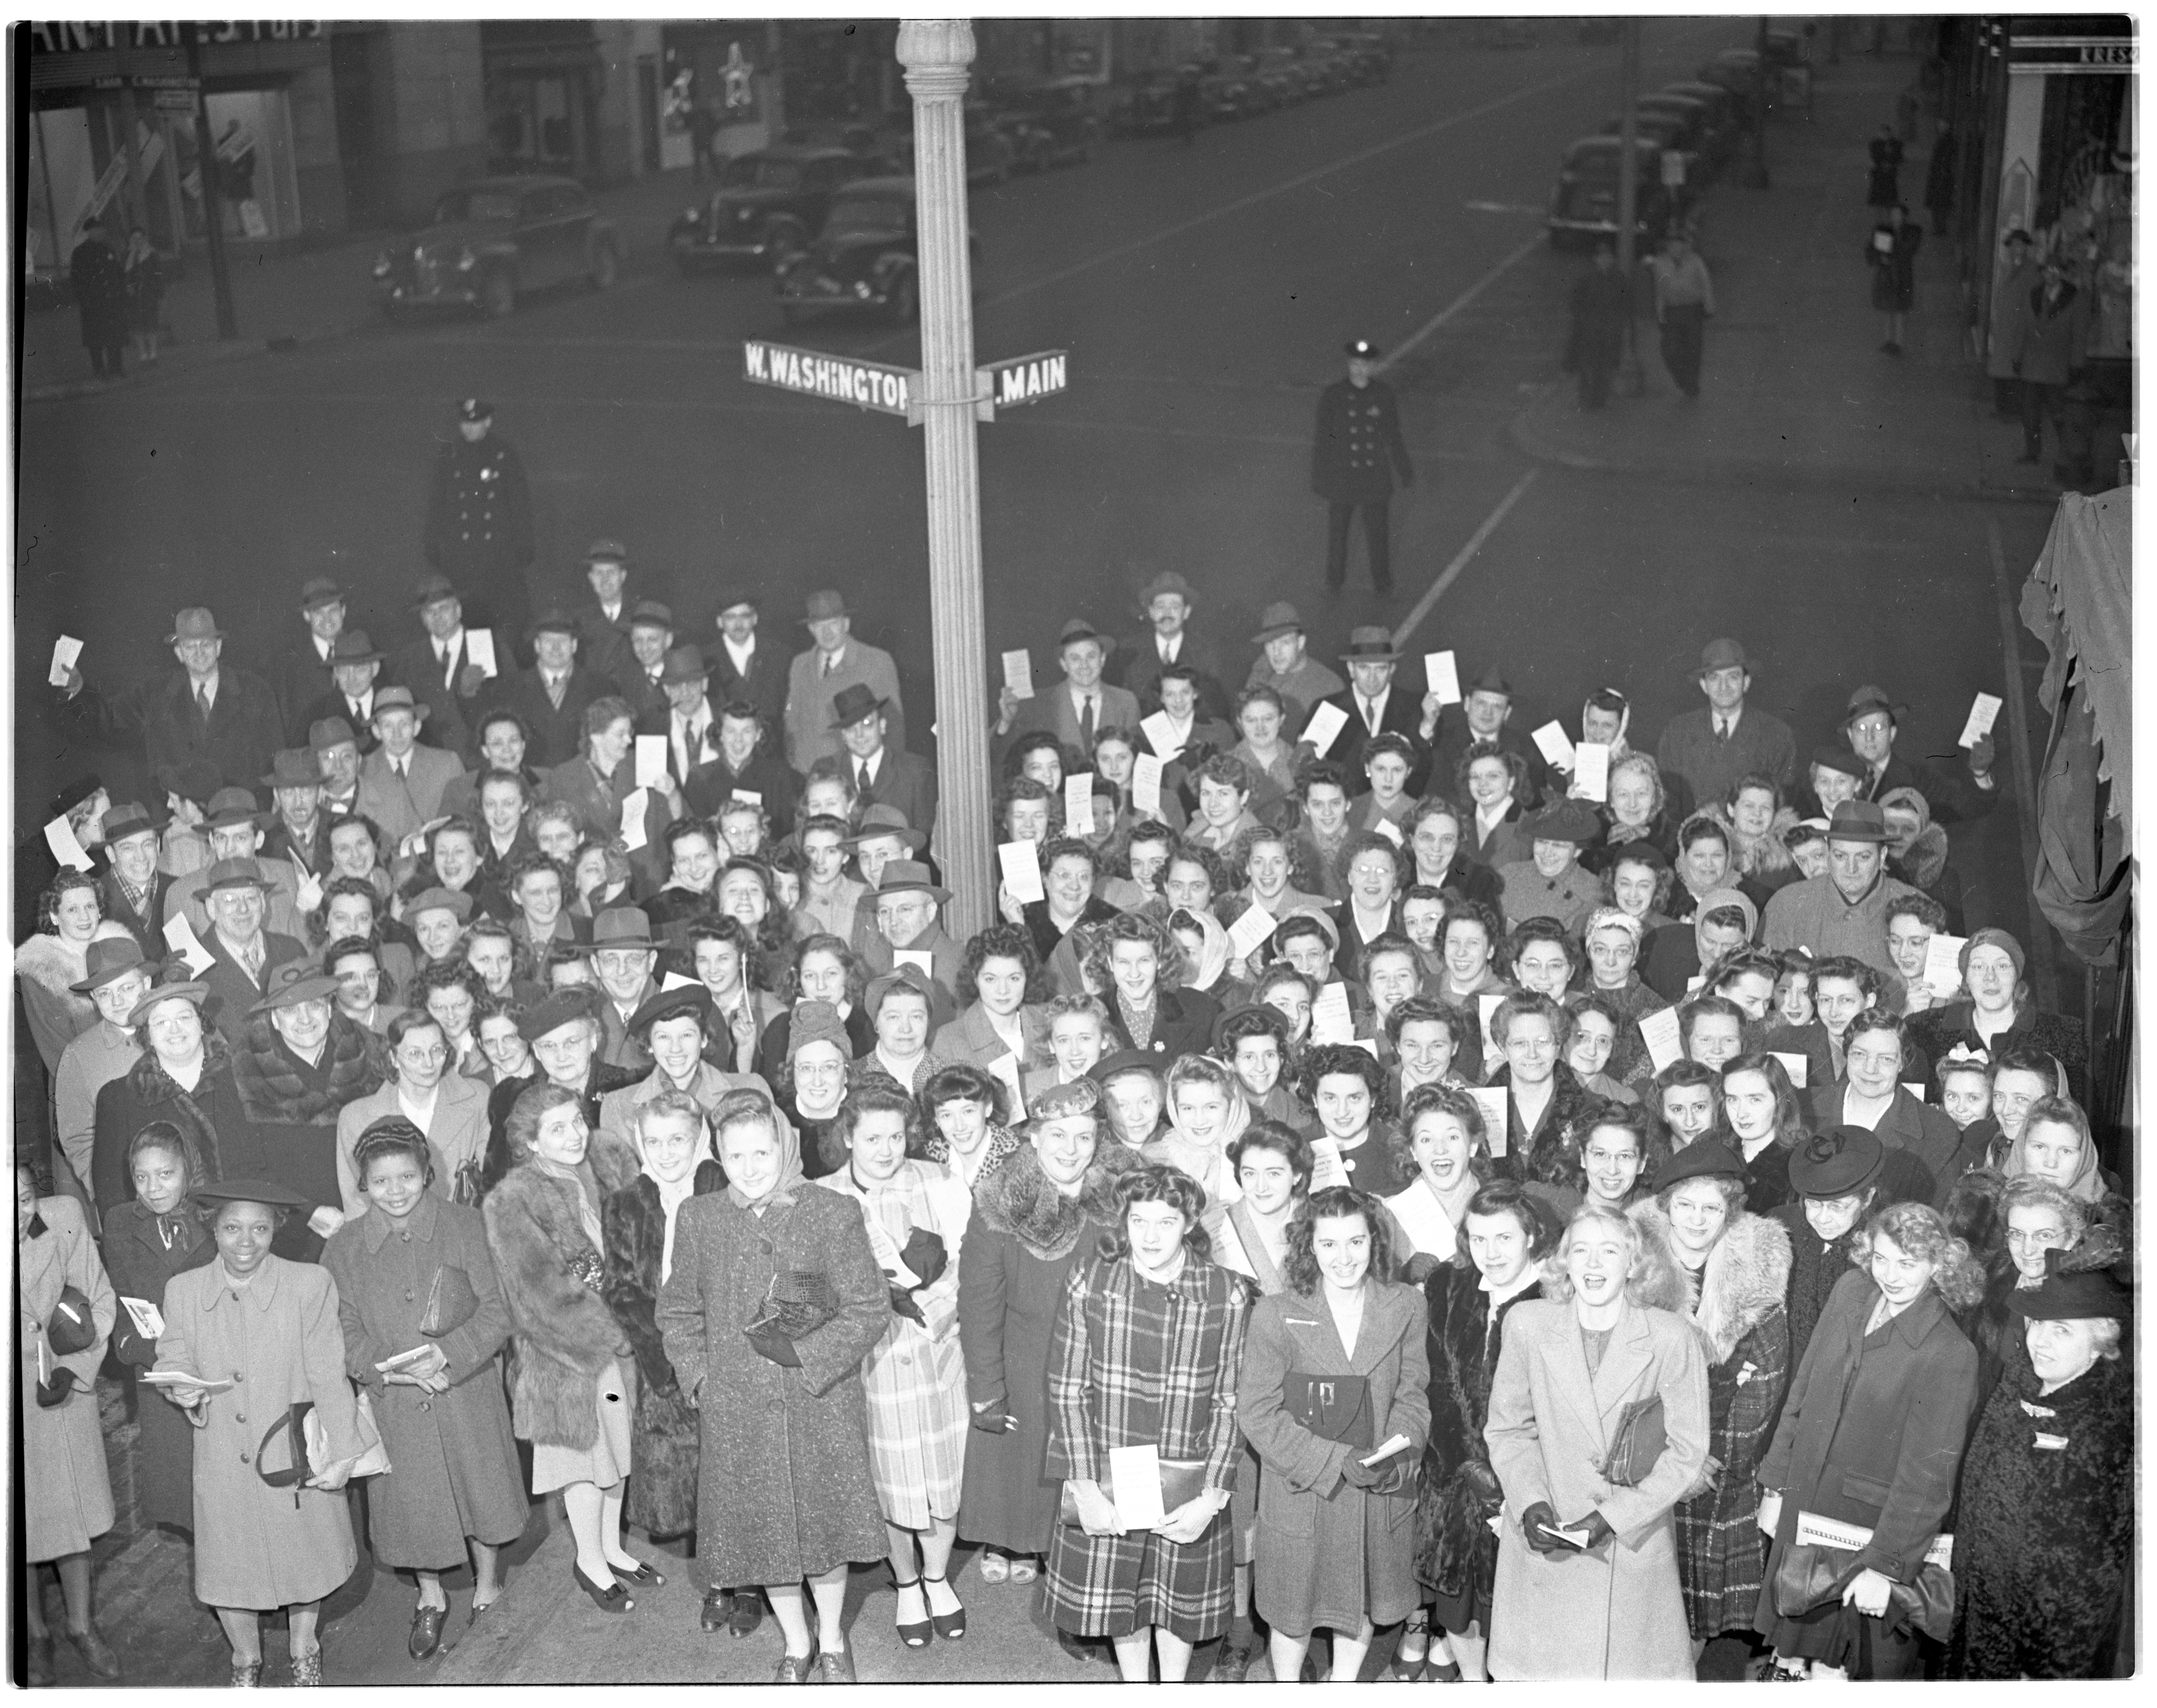 Clerks Gather on Main Street for 4th War Bond Drive, January 1944 image